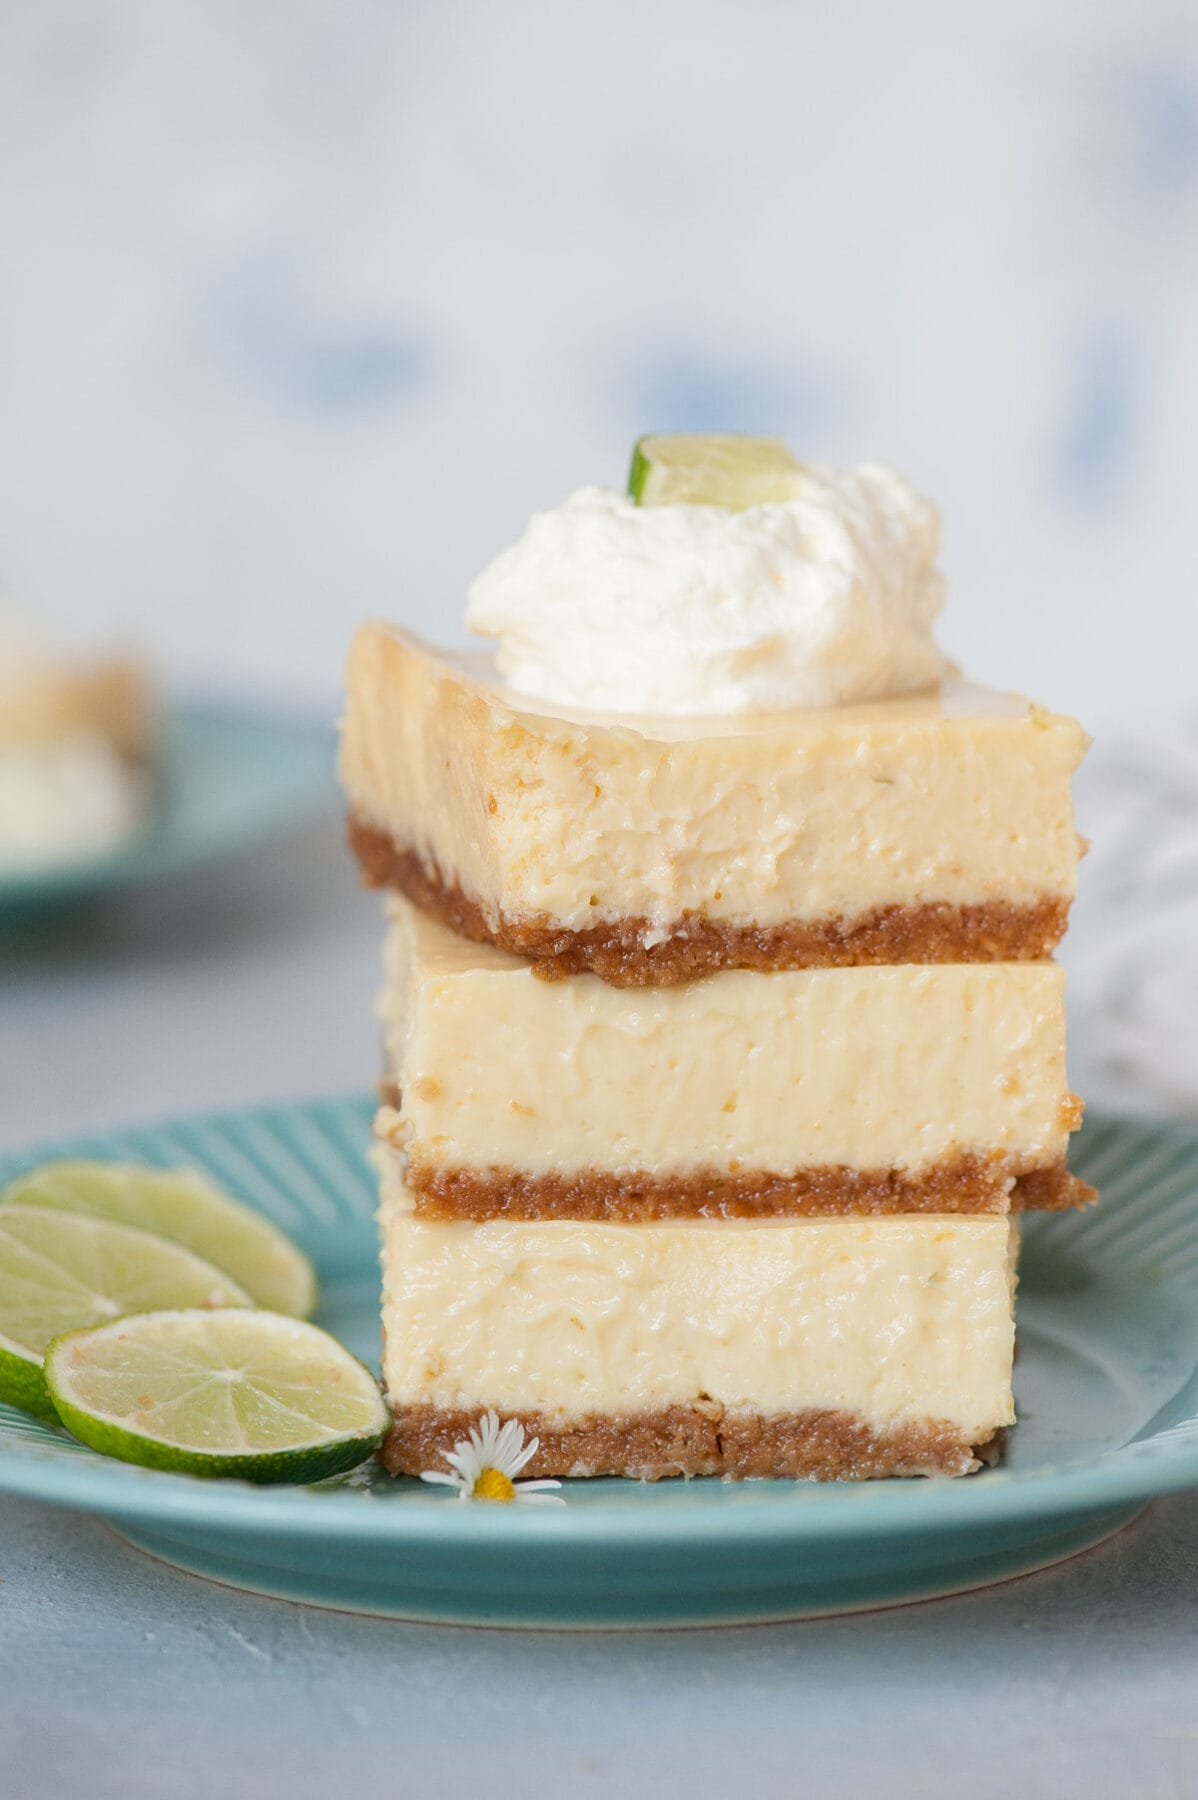 A stack of Key lime pie bars topped with whipped cream on a blue plate.